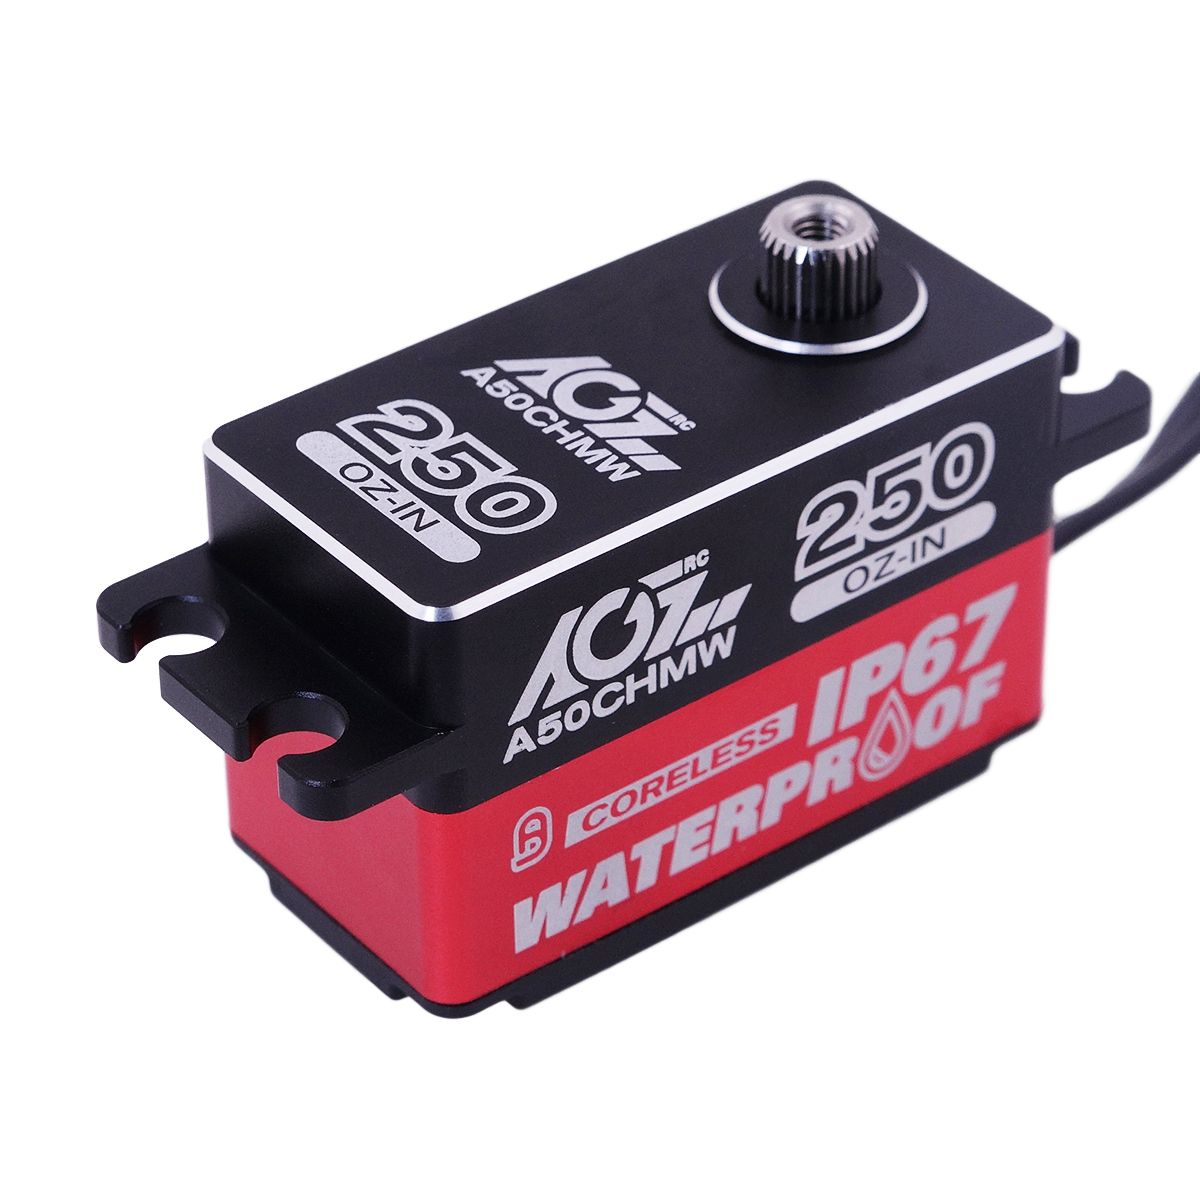 AGF A50CHMW 250oz-in Fully Waterproof Steel Gear Low Profile Waterproof Servo for 1/10 RC Touring Car